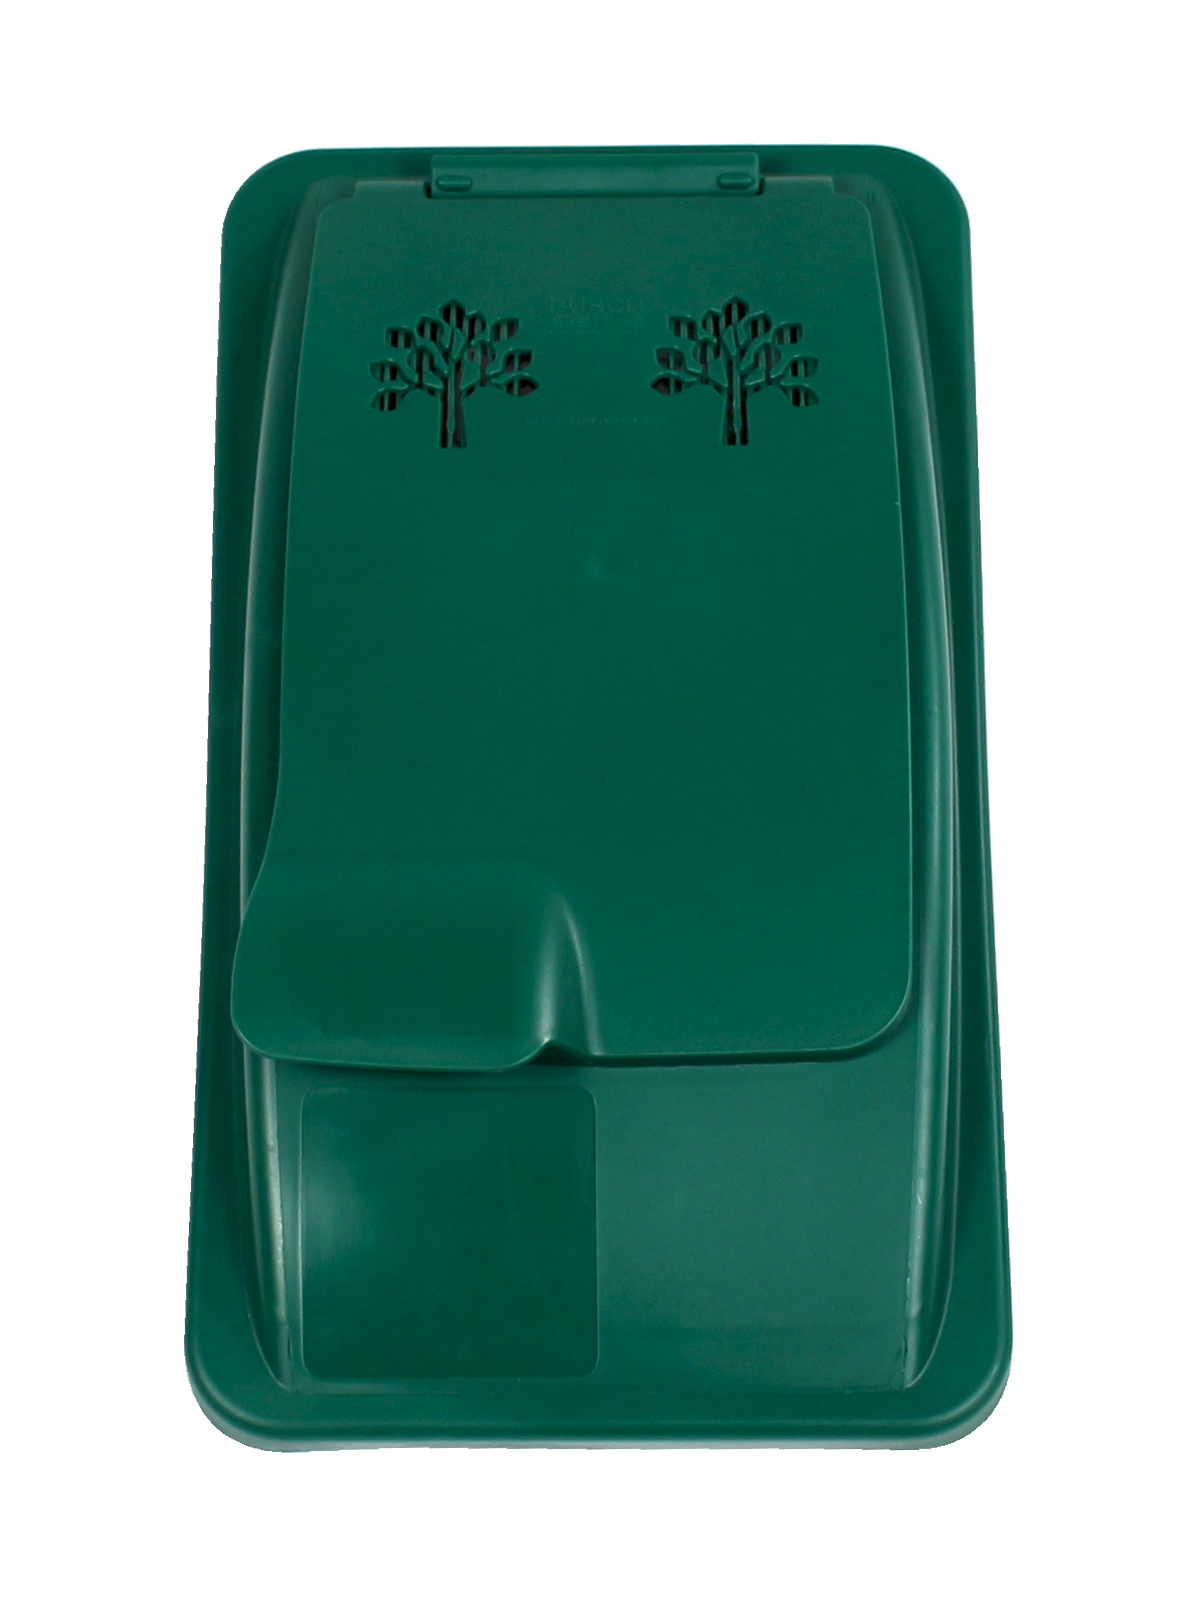 WASTE WATCHER - Single - Lid - Vented Lift - Dark Green